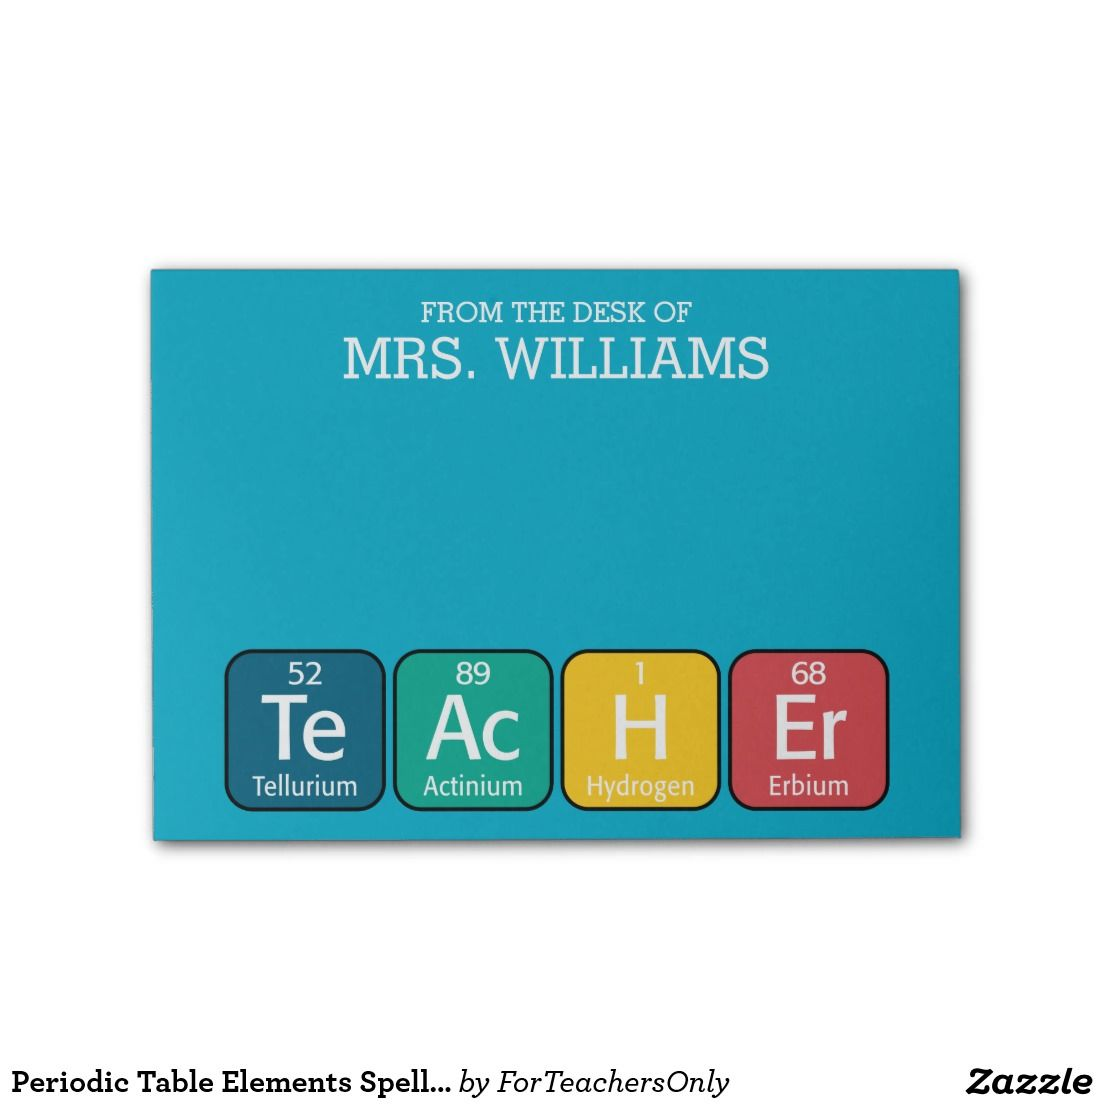 Science teacher gifts science teacher gift ideas on zazzle shop periodic table elements spelling teacher post it notes created by forteachersonly gamestrikefo Image collections